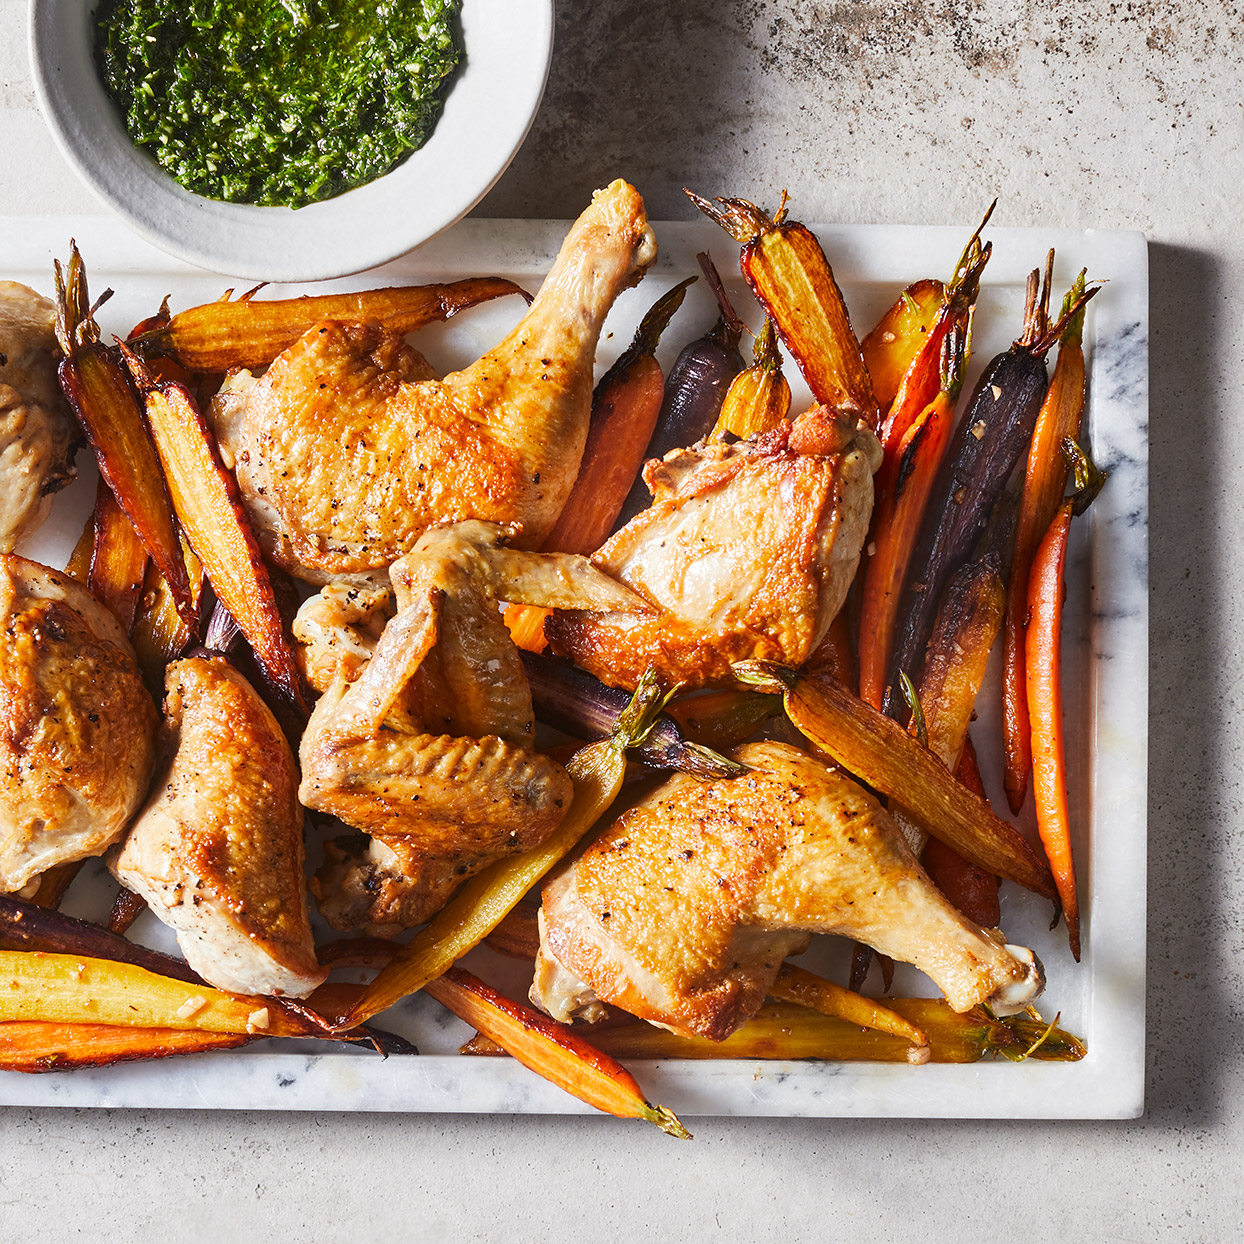 Nothing says comfort like a roasted whole chicken, but it can take a while to cook. Using parts instead puts this easy roast chicken on the weeknight menu. Fresh herbs, lemon juice and capers in this Italian salsa verde sauce brighten things up. Source: EatingWell Magazine, March 2020